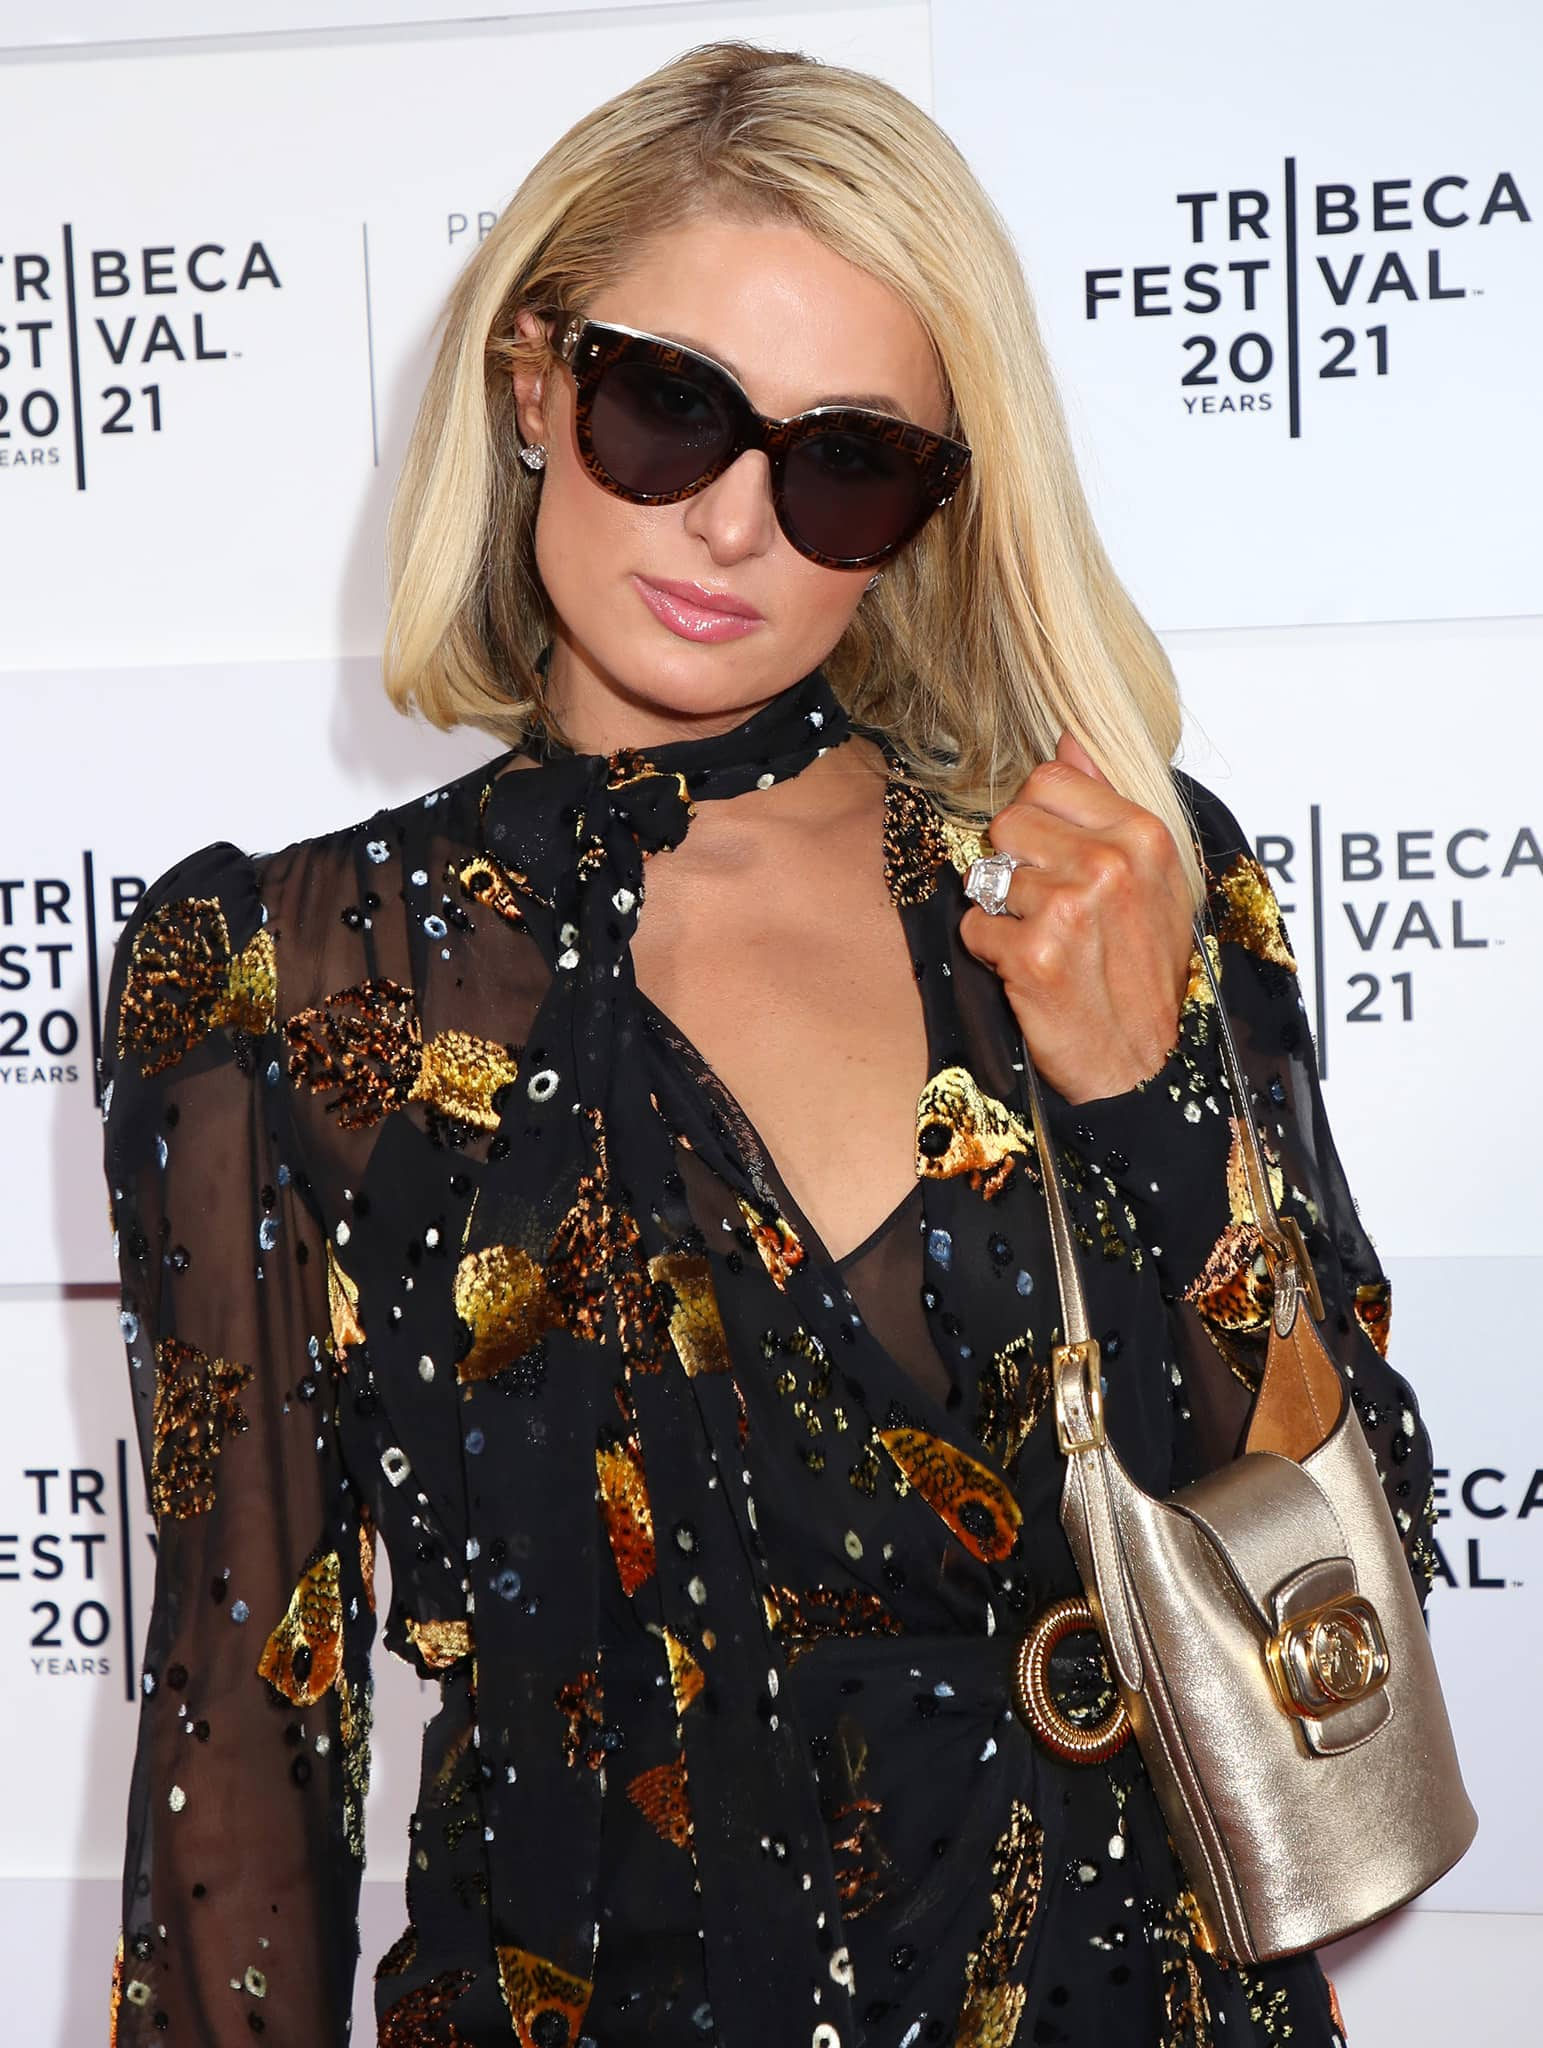 Paris Hilton shows off her engagement ring and accessorizes with Fendi sunglasses and Lanvin metallic gold bucket bag